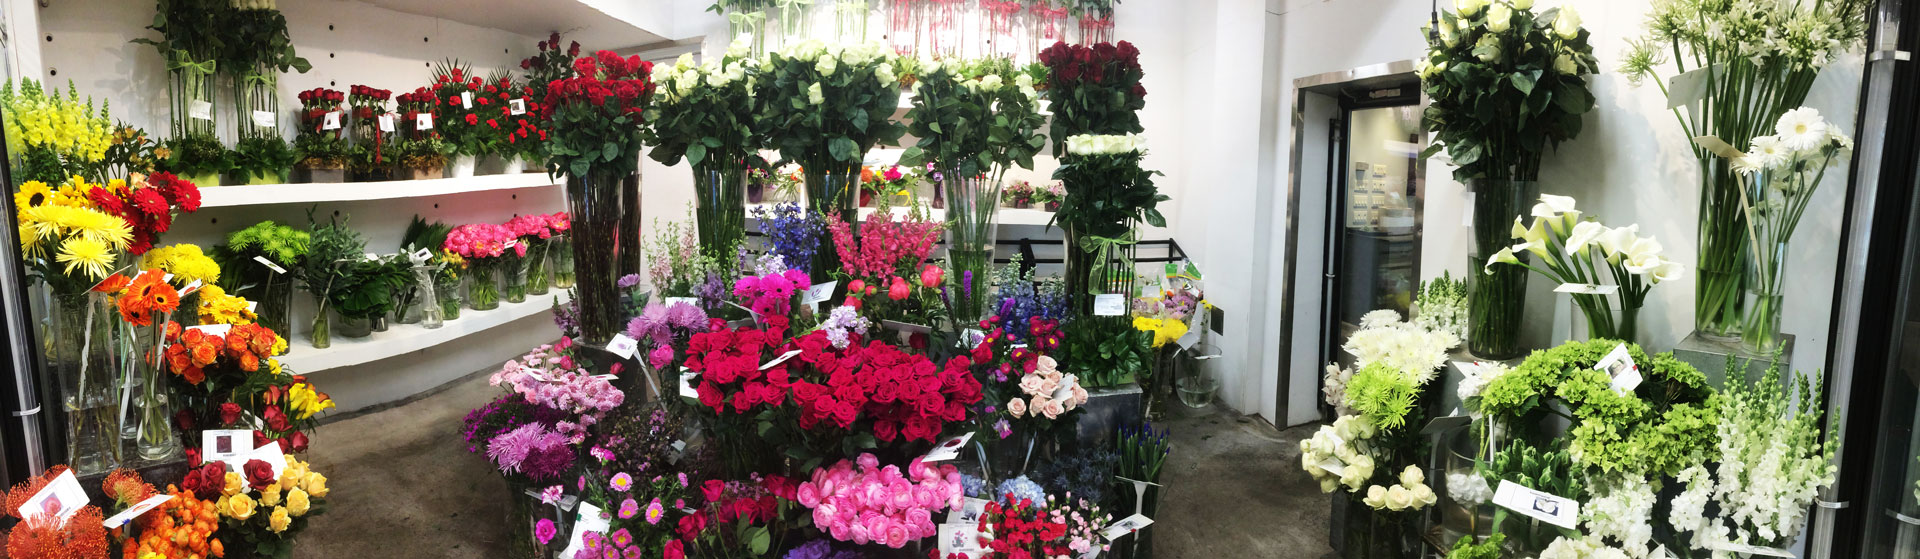 Loose cuts in flowershop